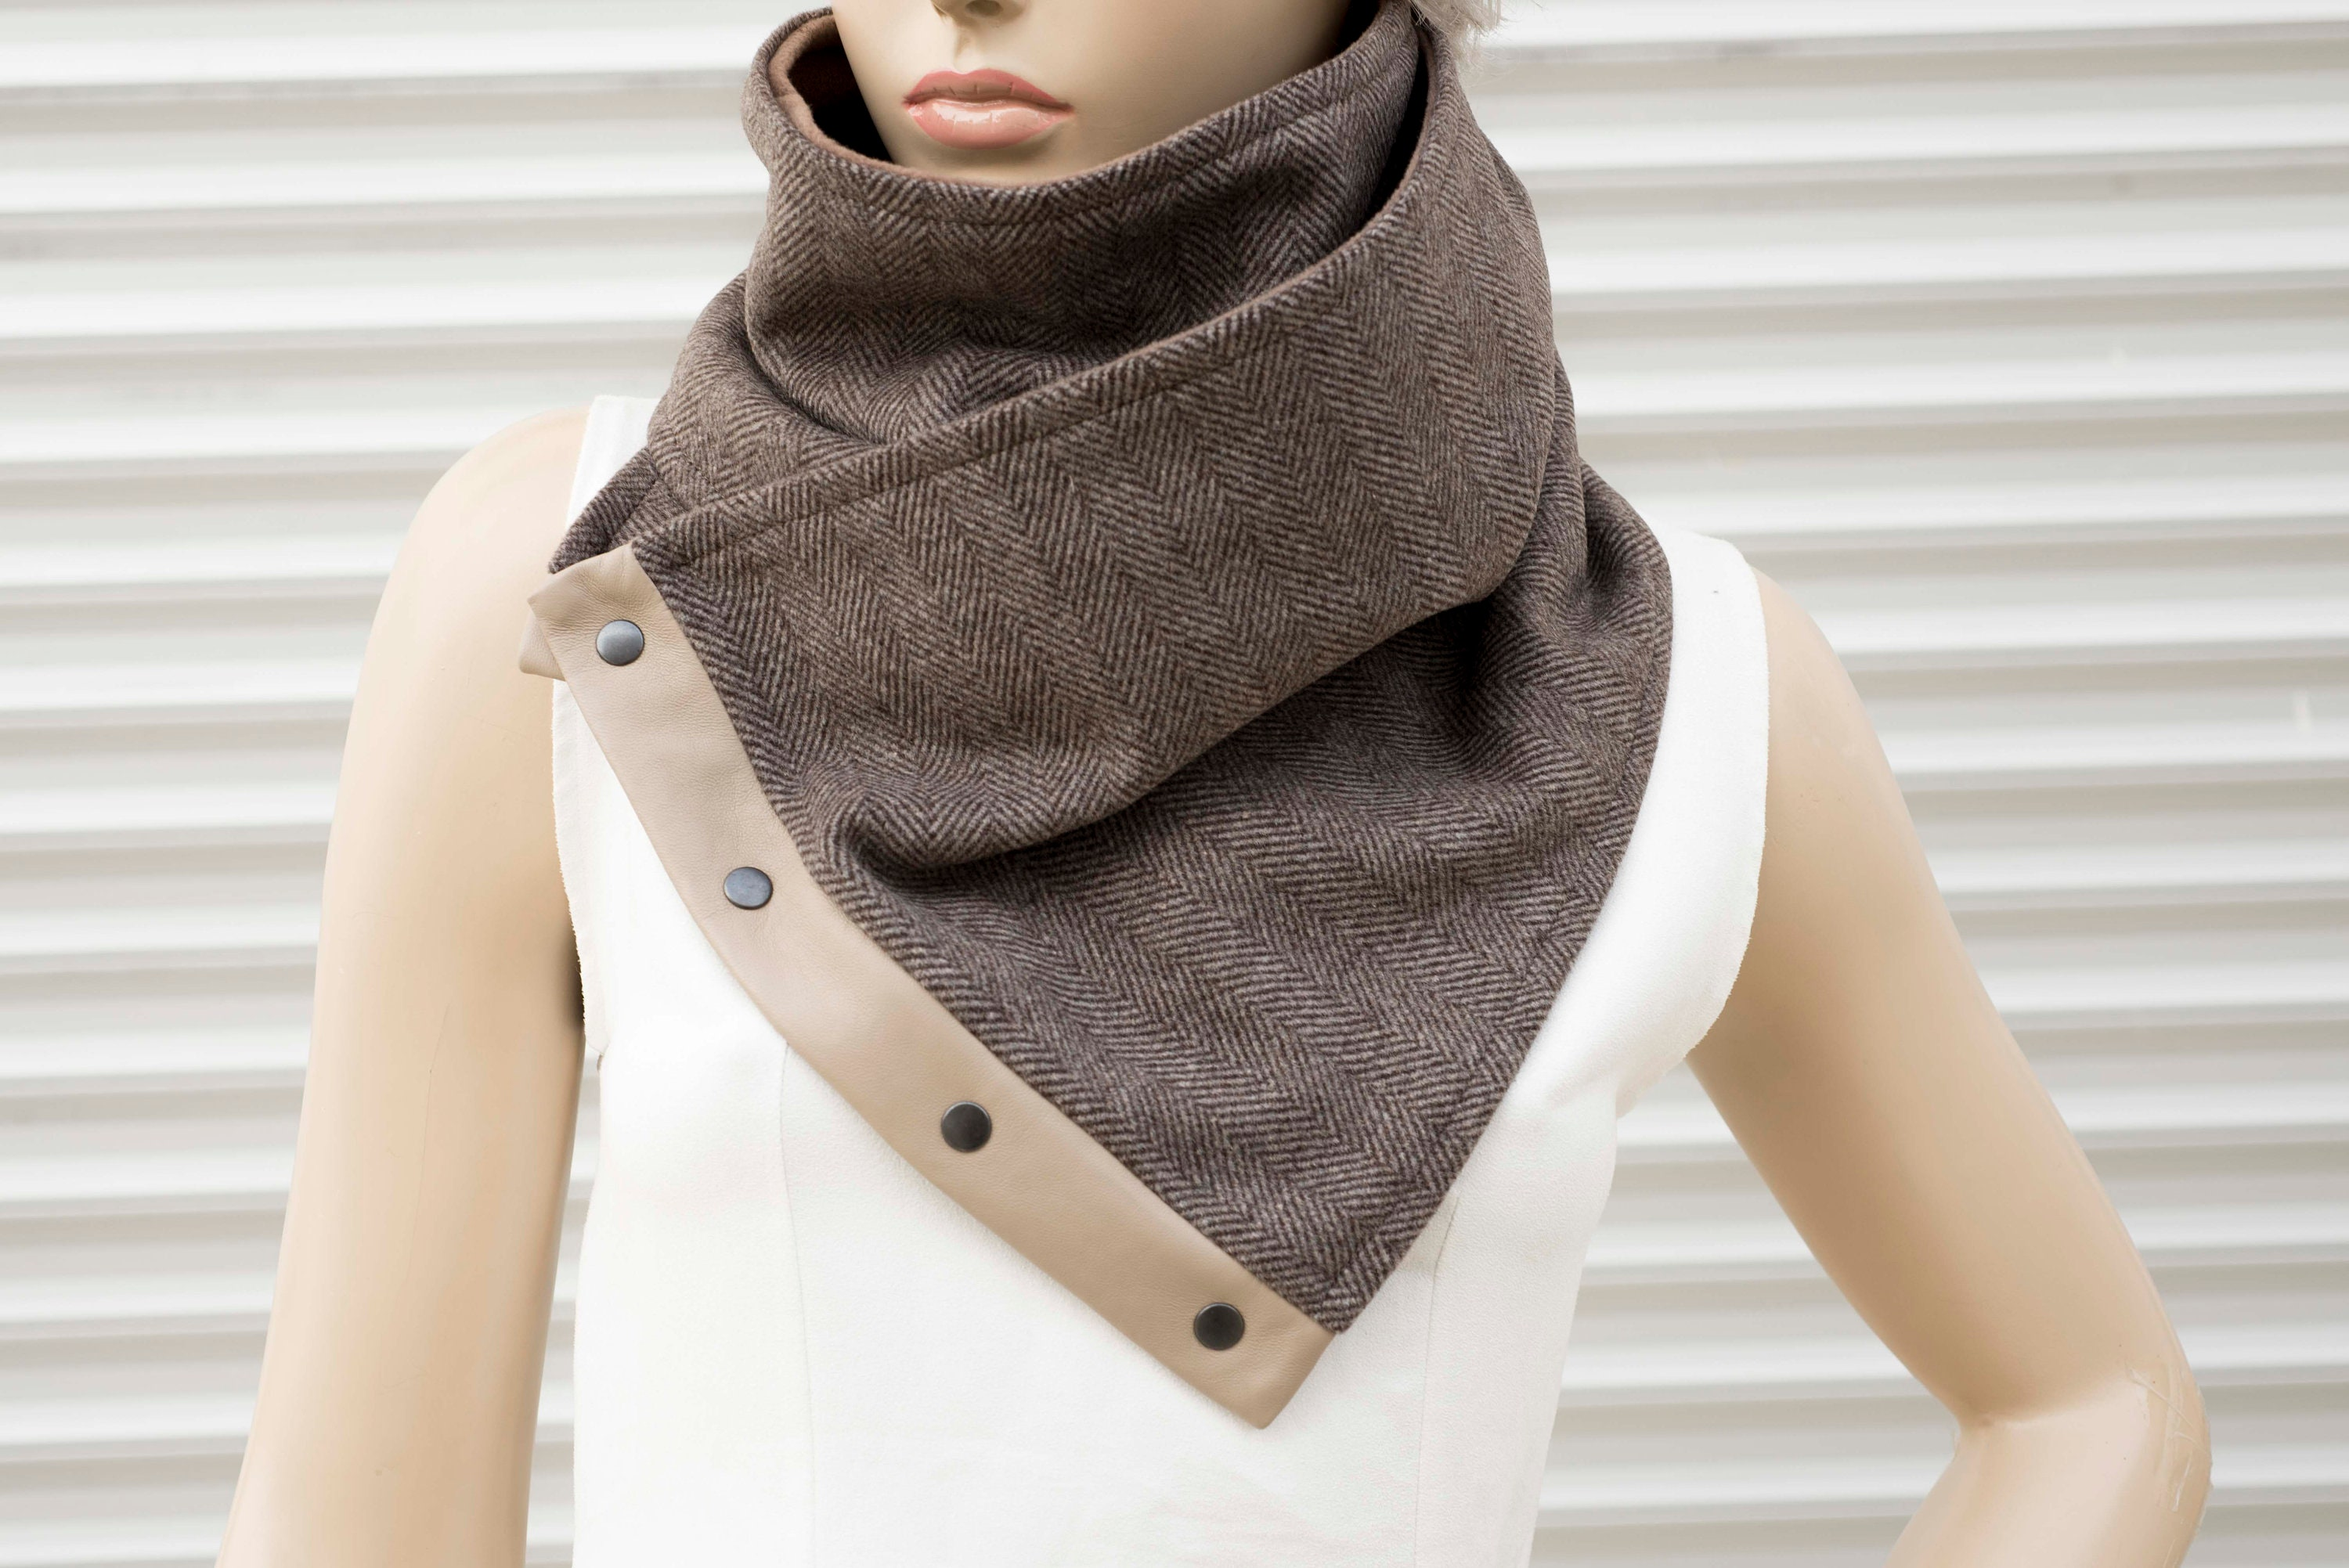 Mens scarf neckwarmer chunky infinity scarf with snaps husband boy friend brother gift, DELIVERY TIME 2-4 DAYS